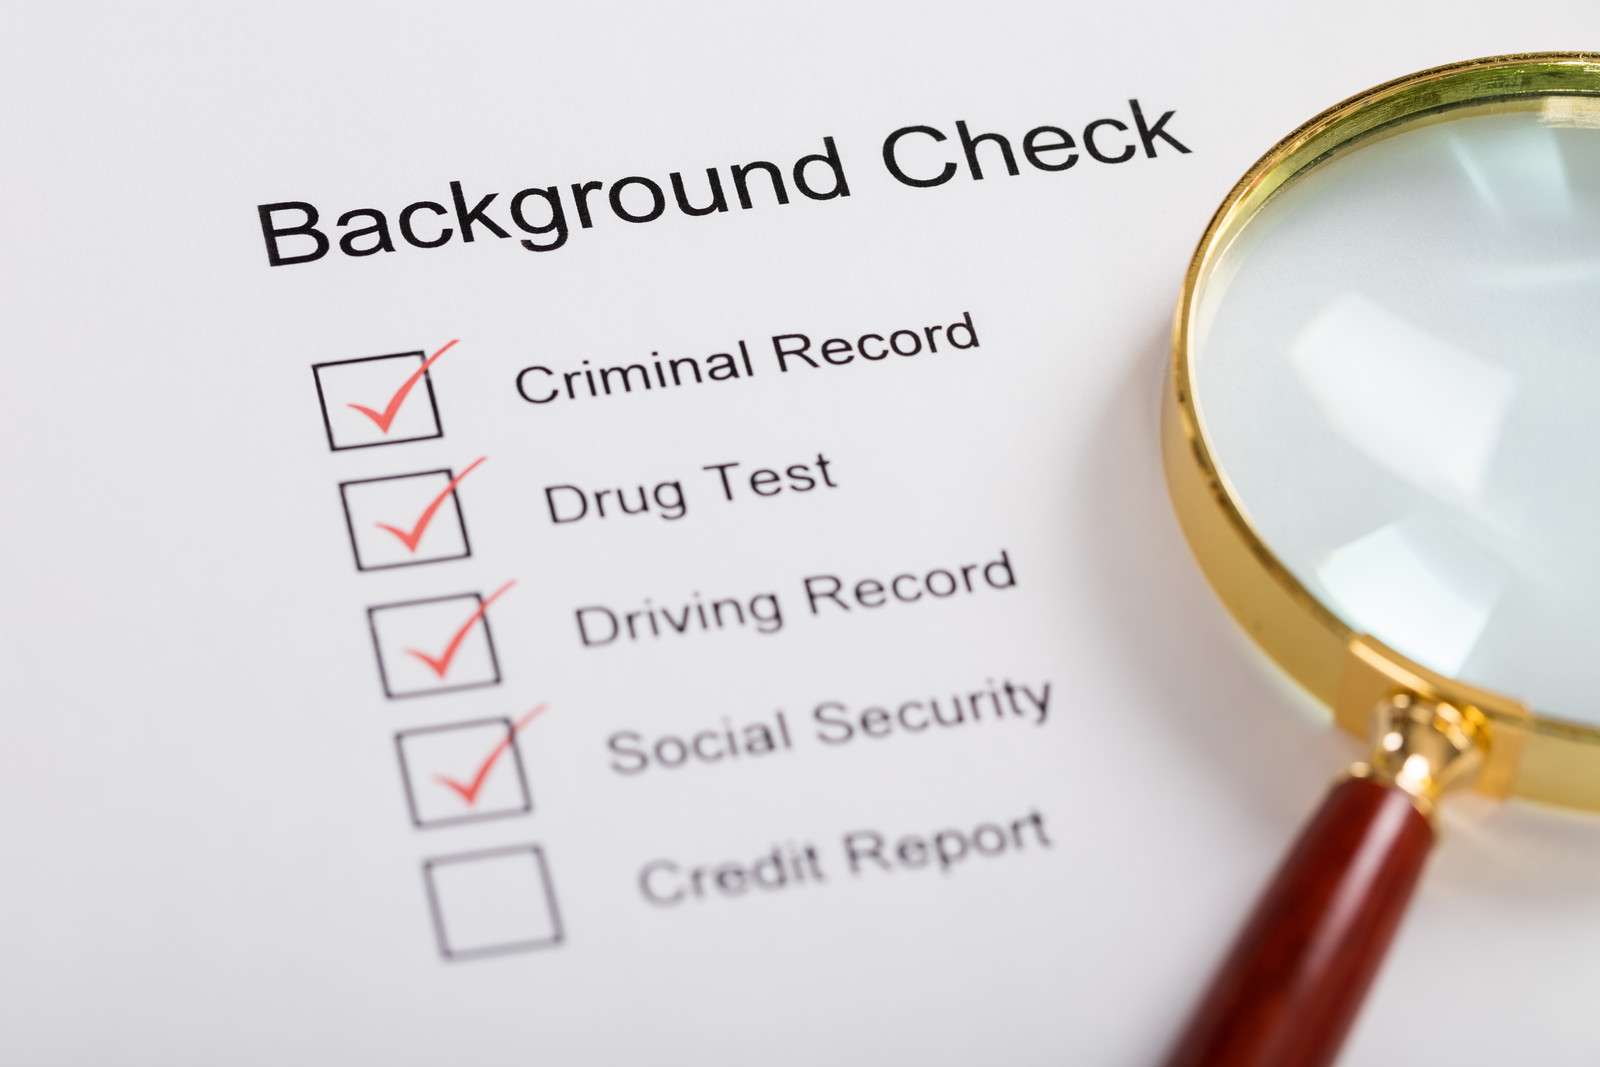 Full Background Checks Ensure Better Security Guards